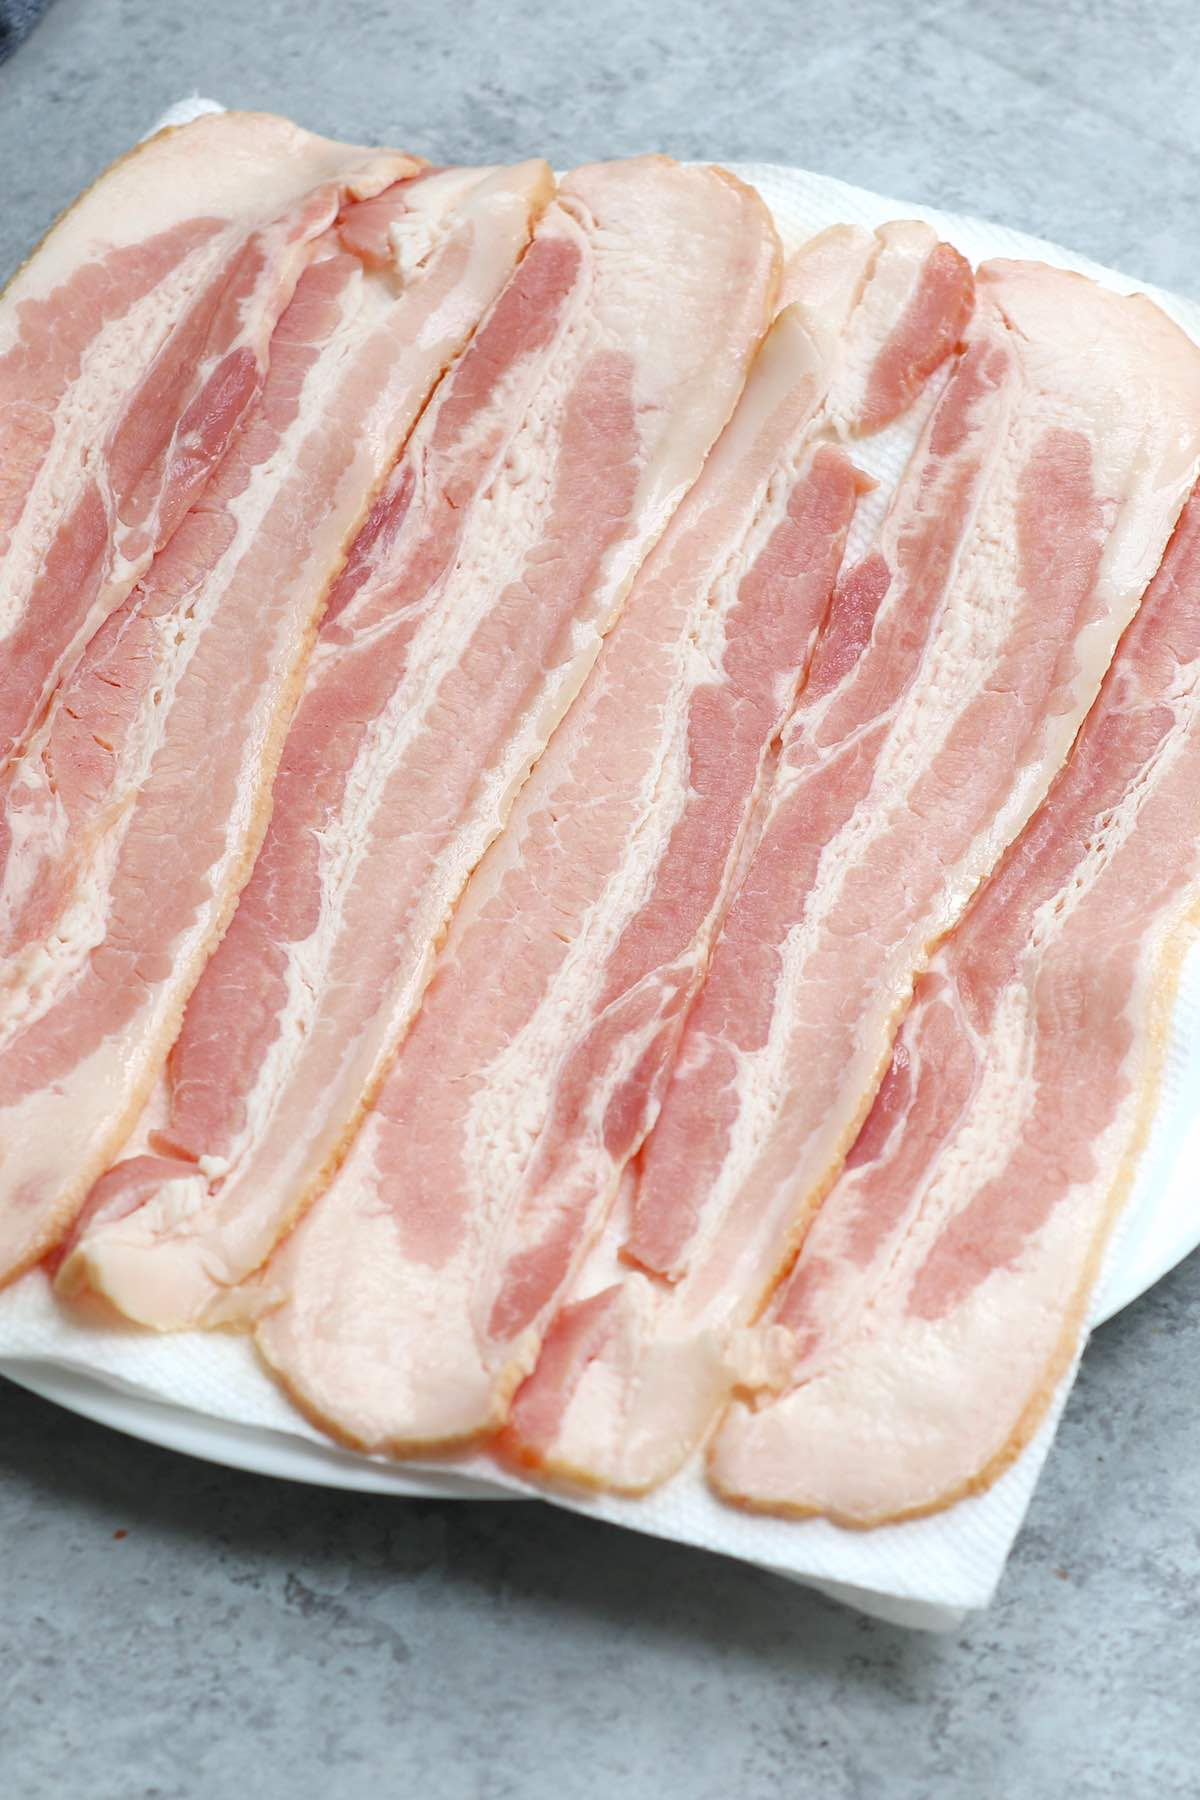 Lay ingthe bacon strips on the paper towels in a single layer with no overlap.